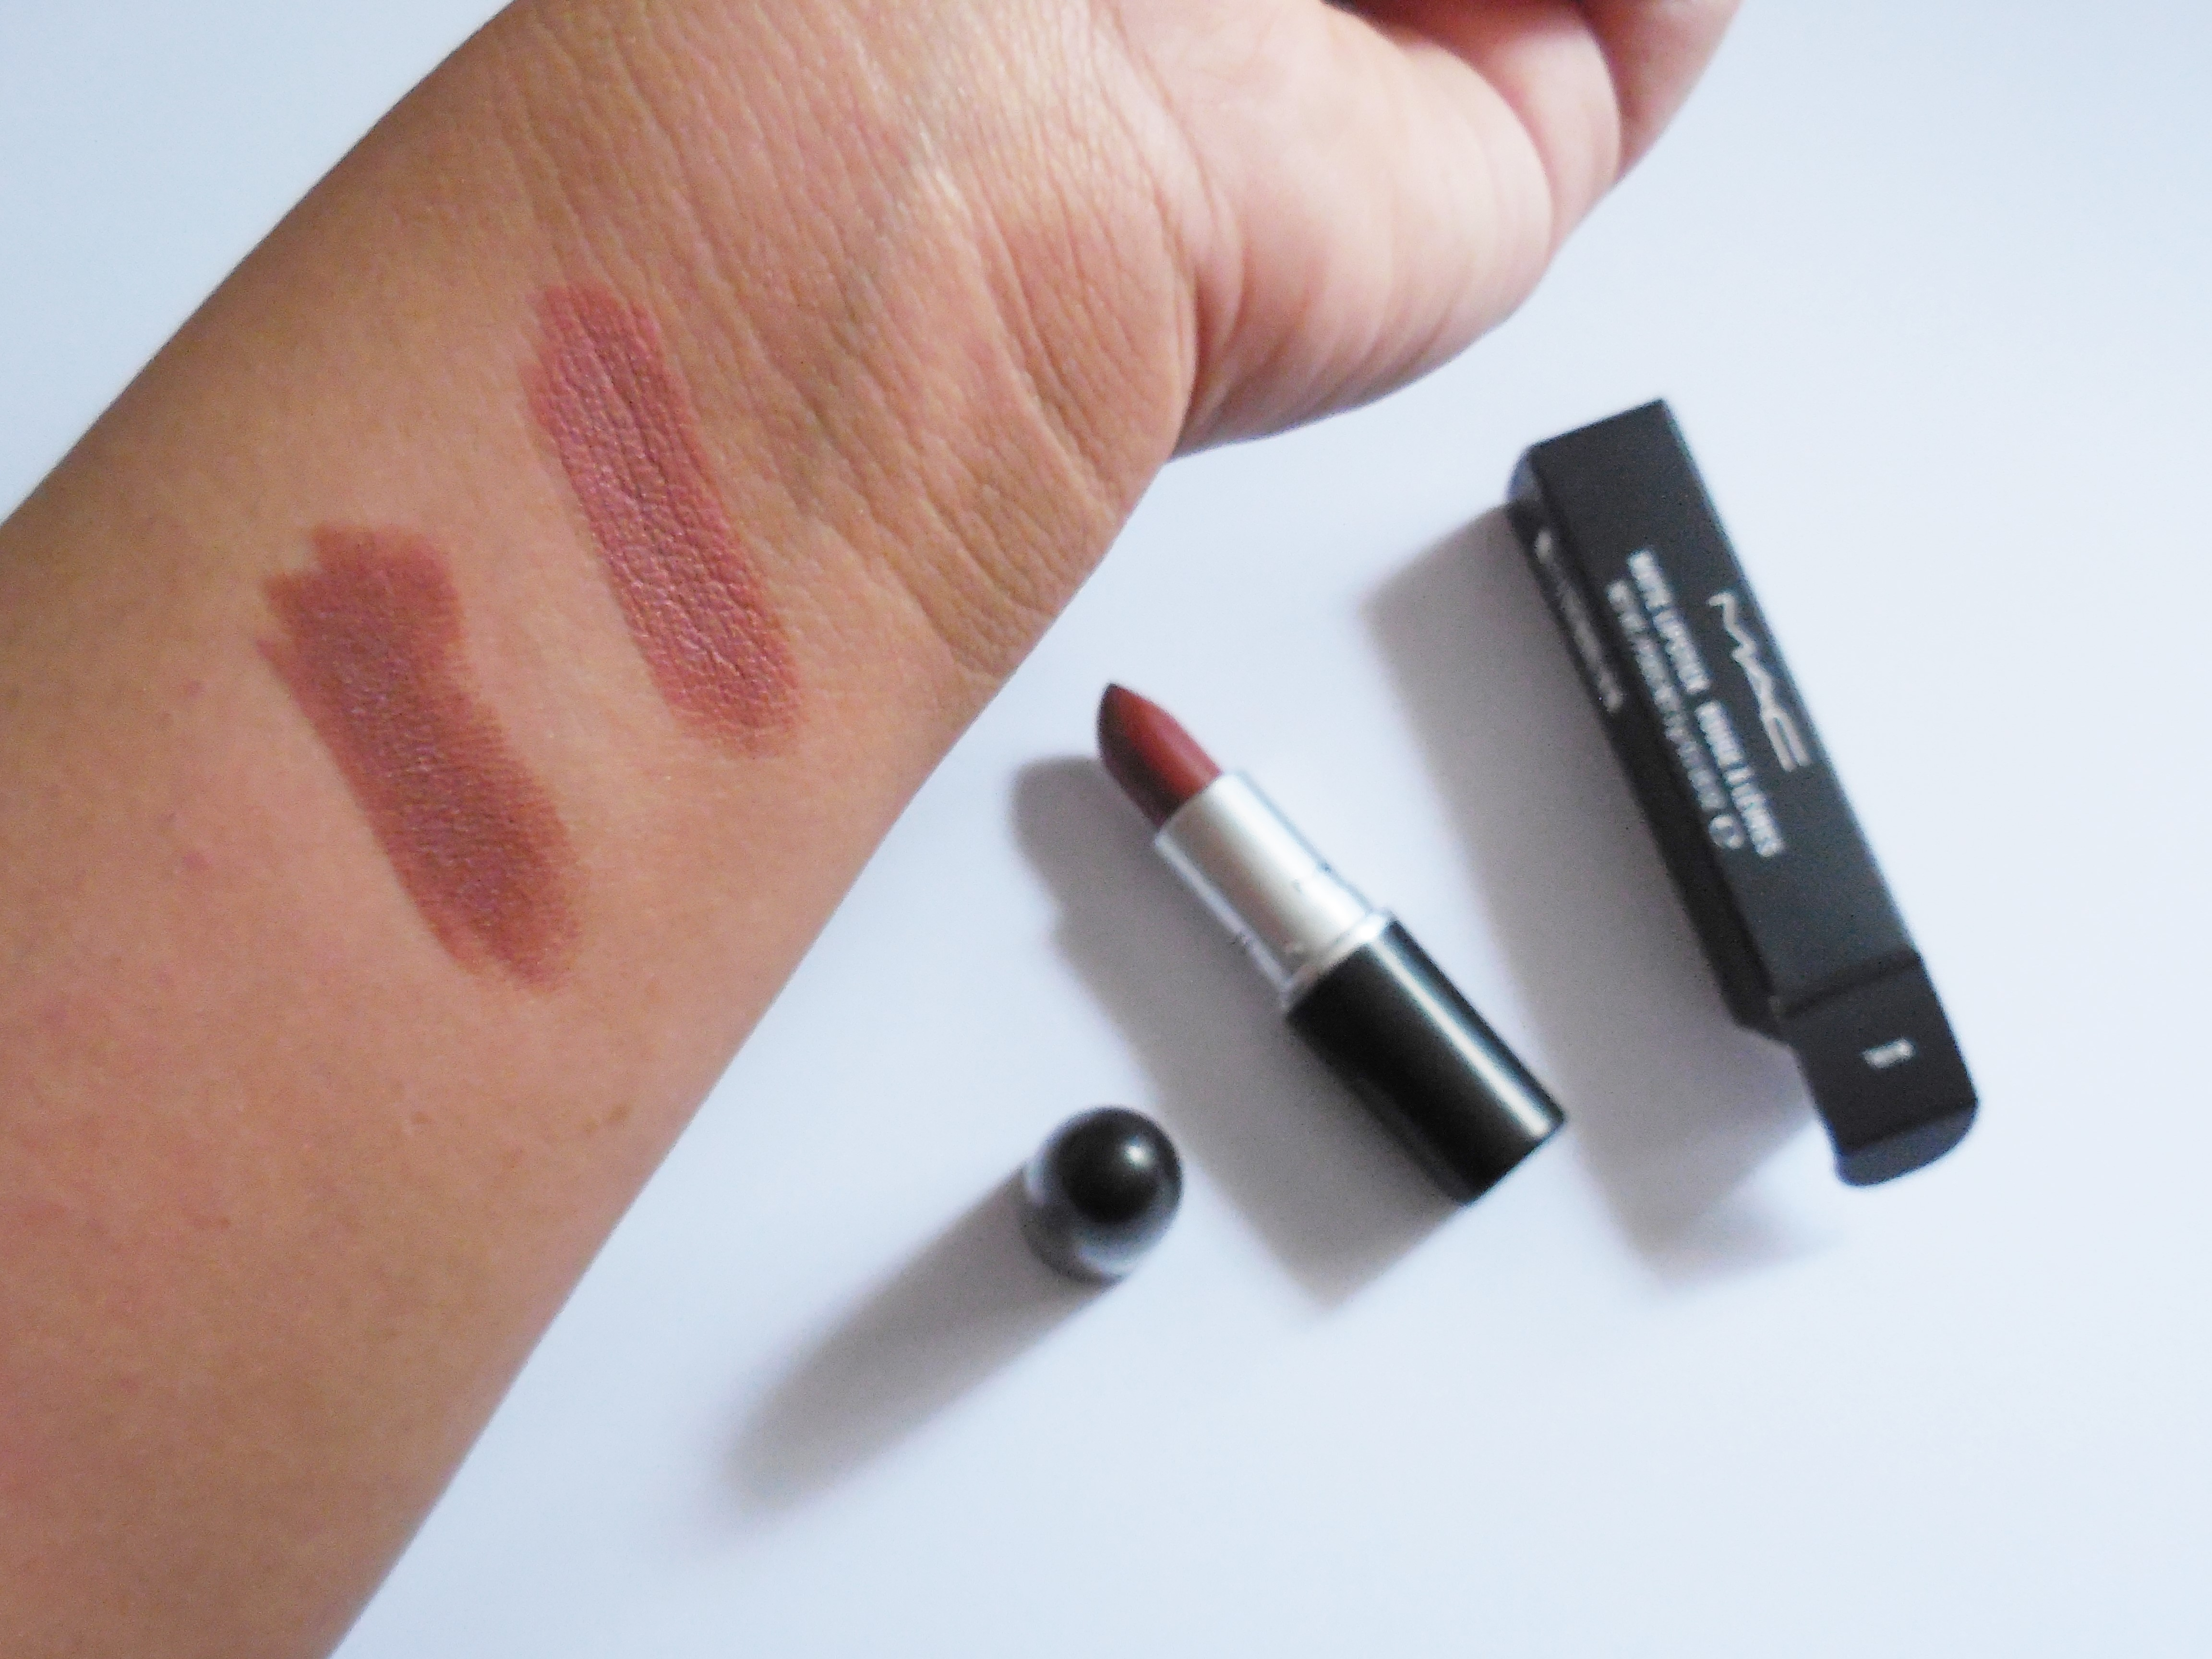 MAC 'Whirl' vs MAC 'Velvet Teddy' - Rabia Qureshi